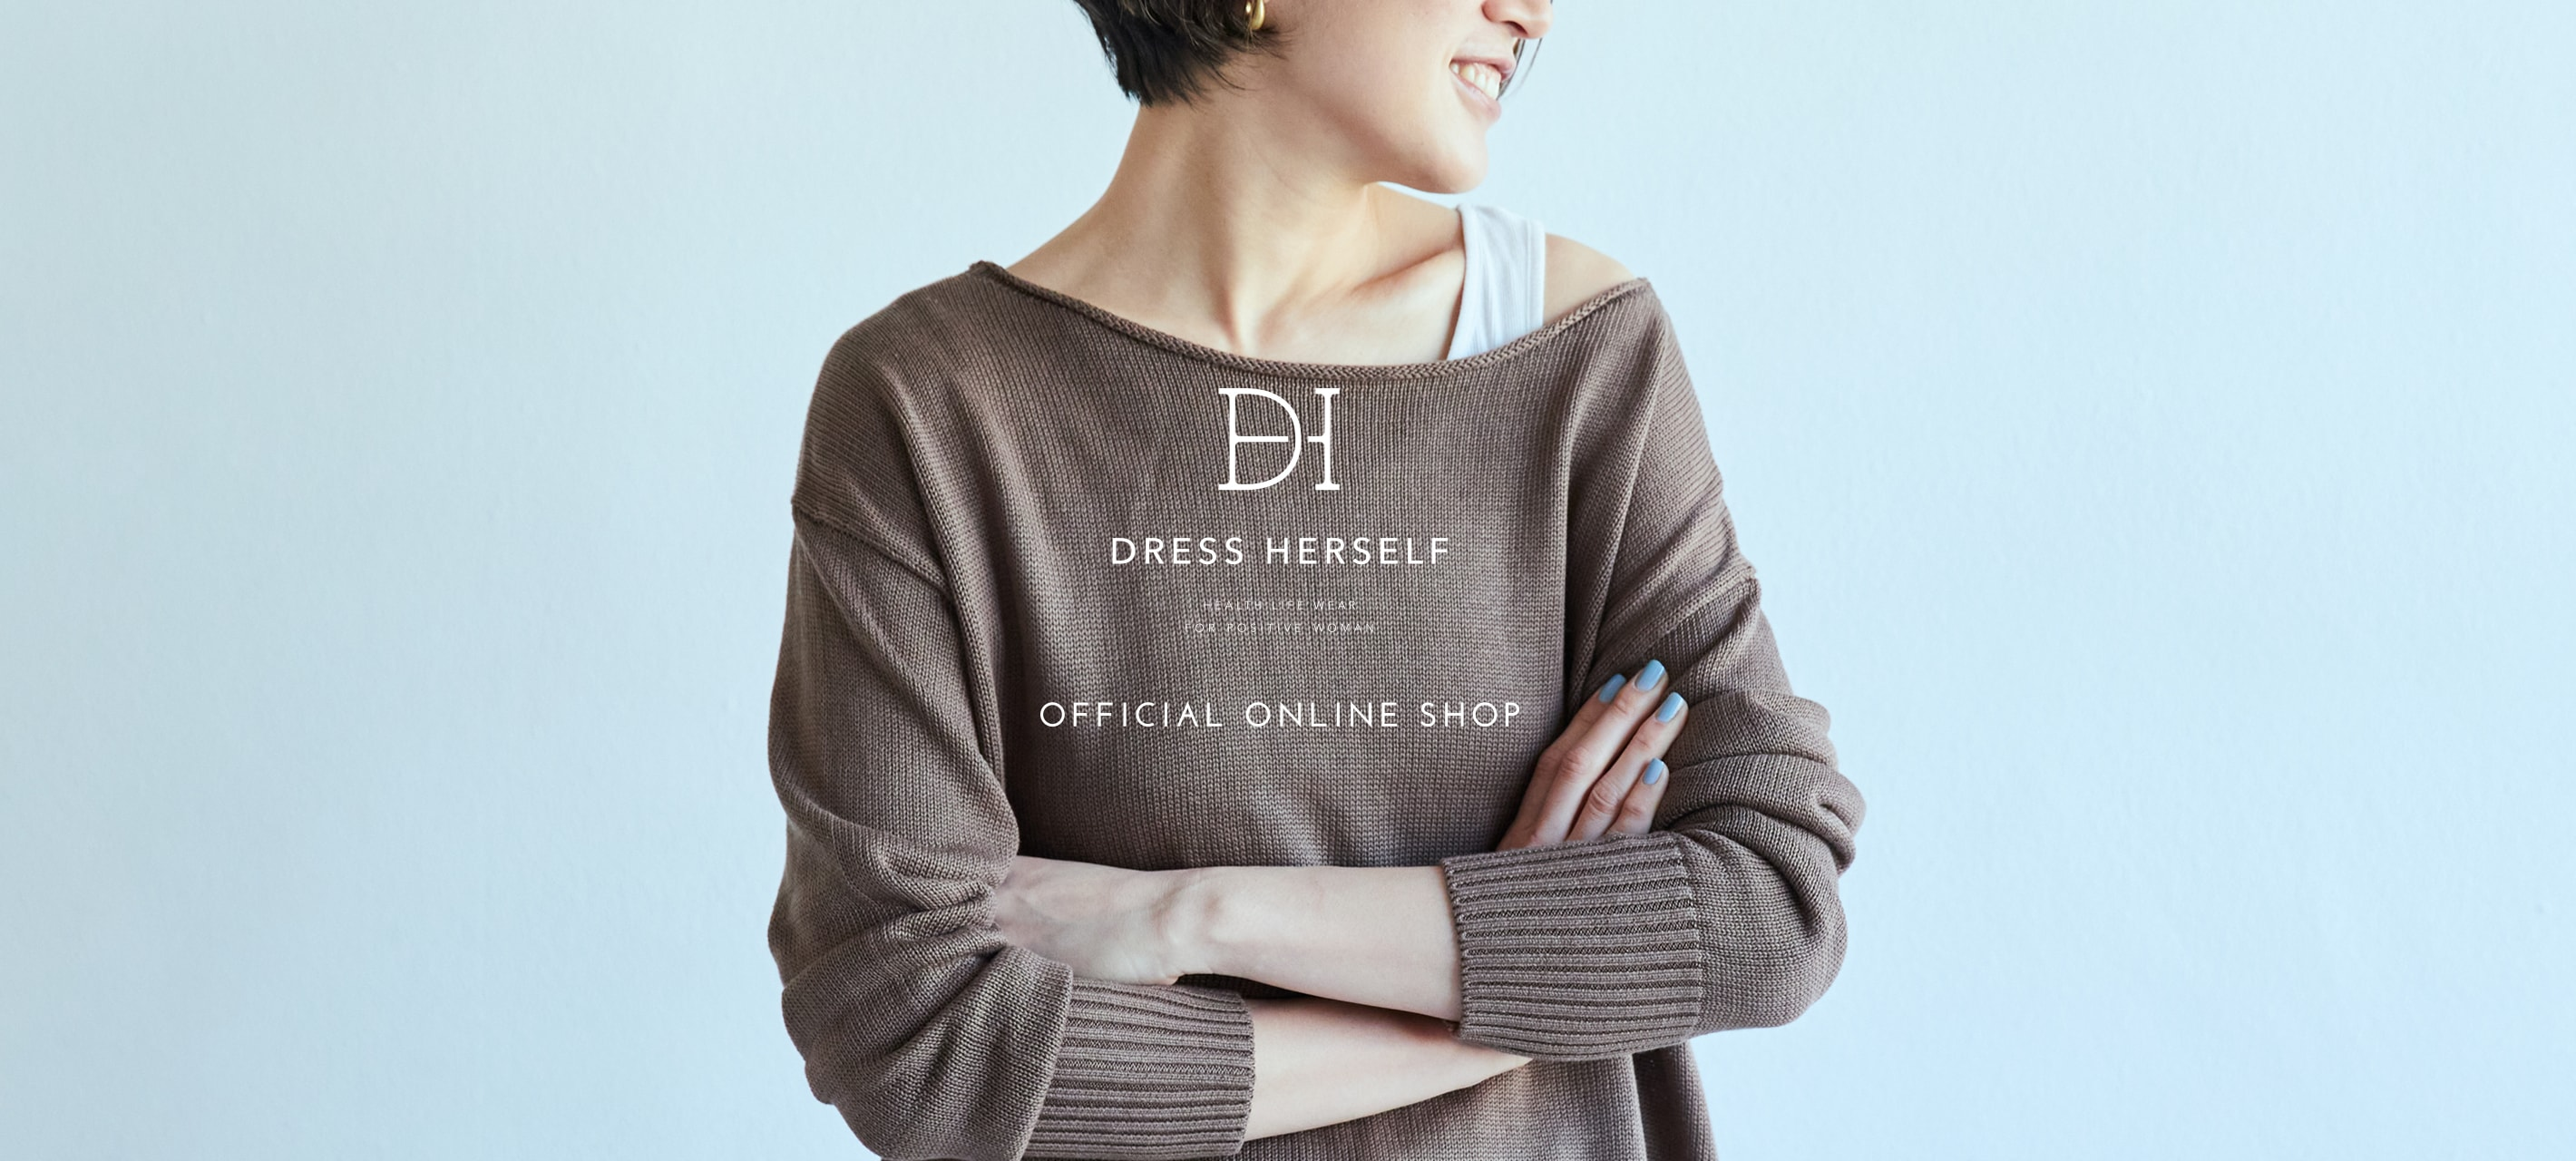 Dressher Self official site